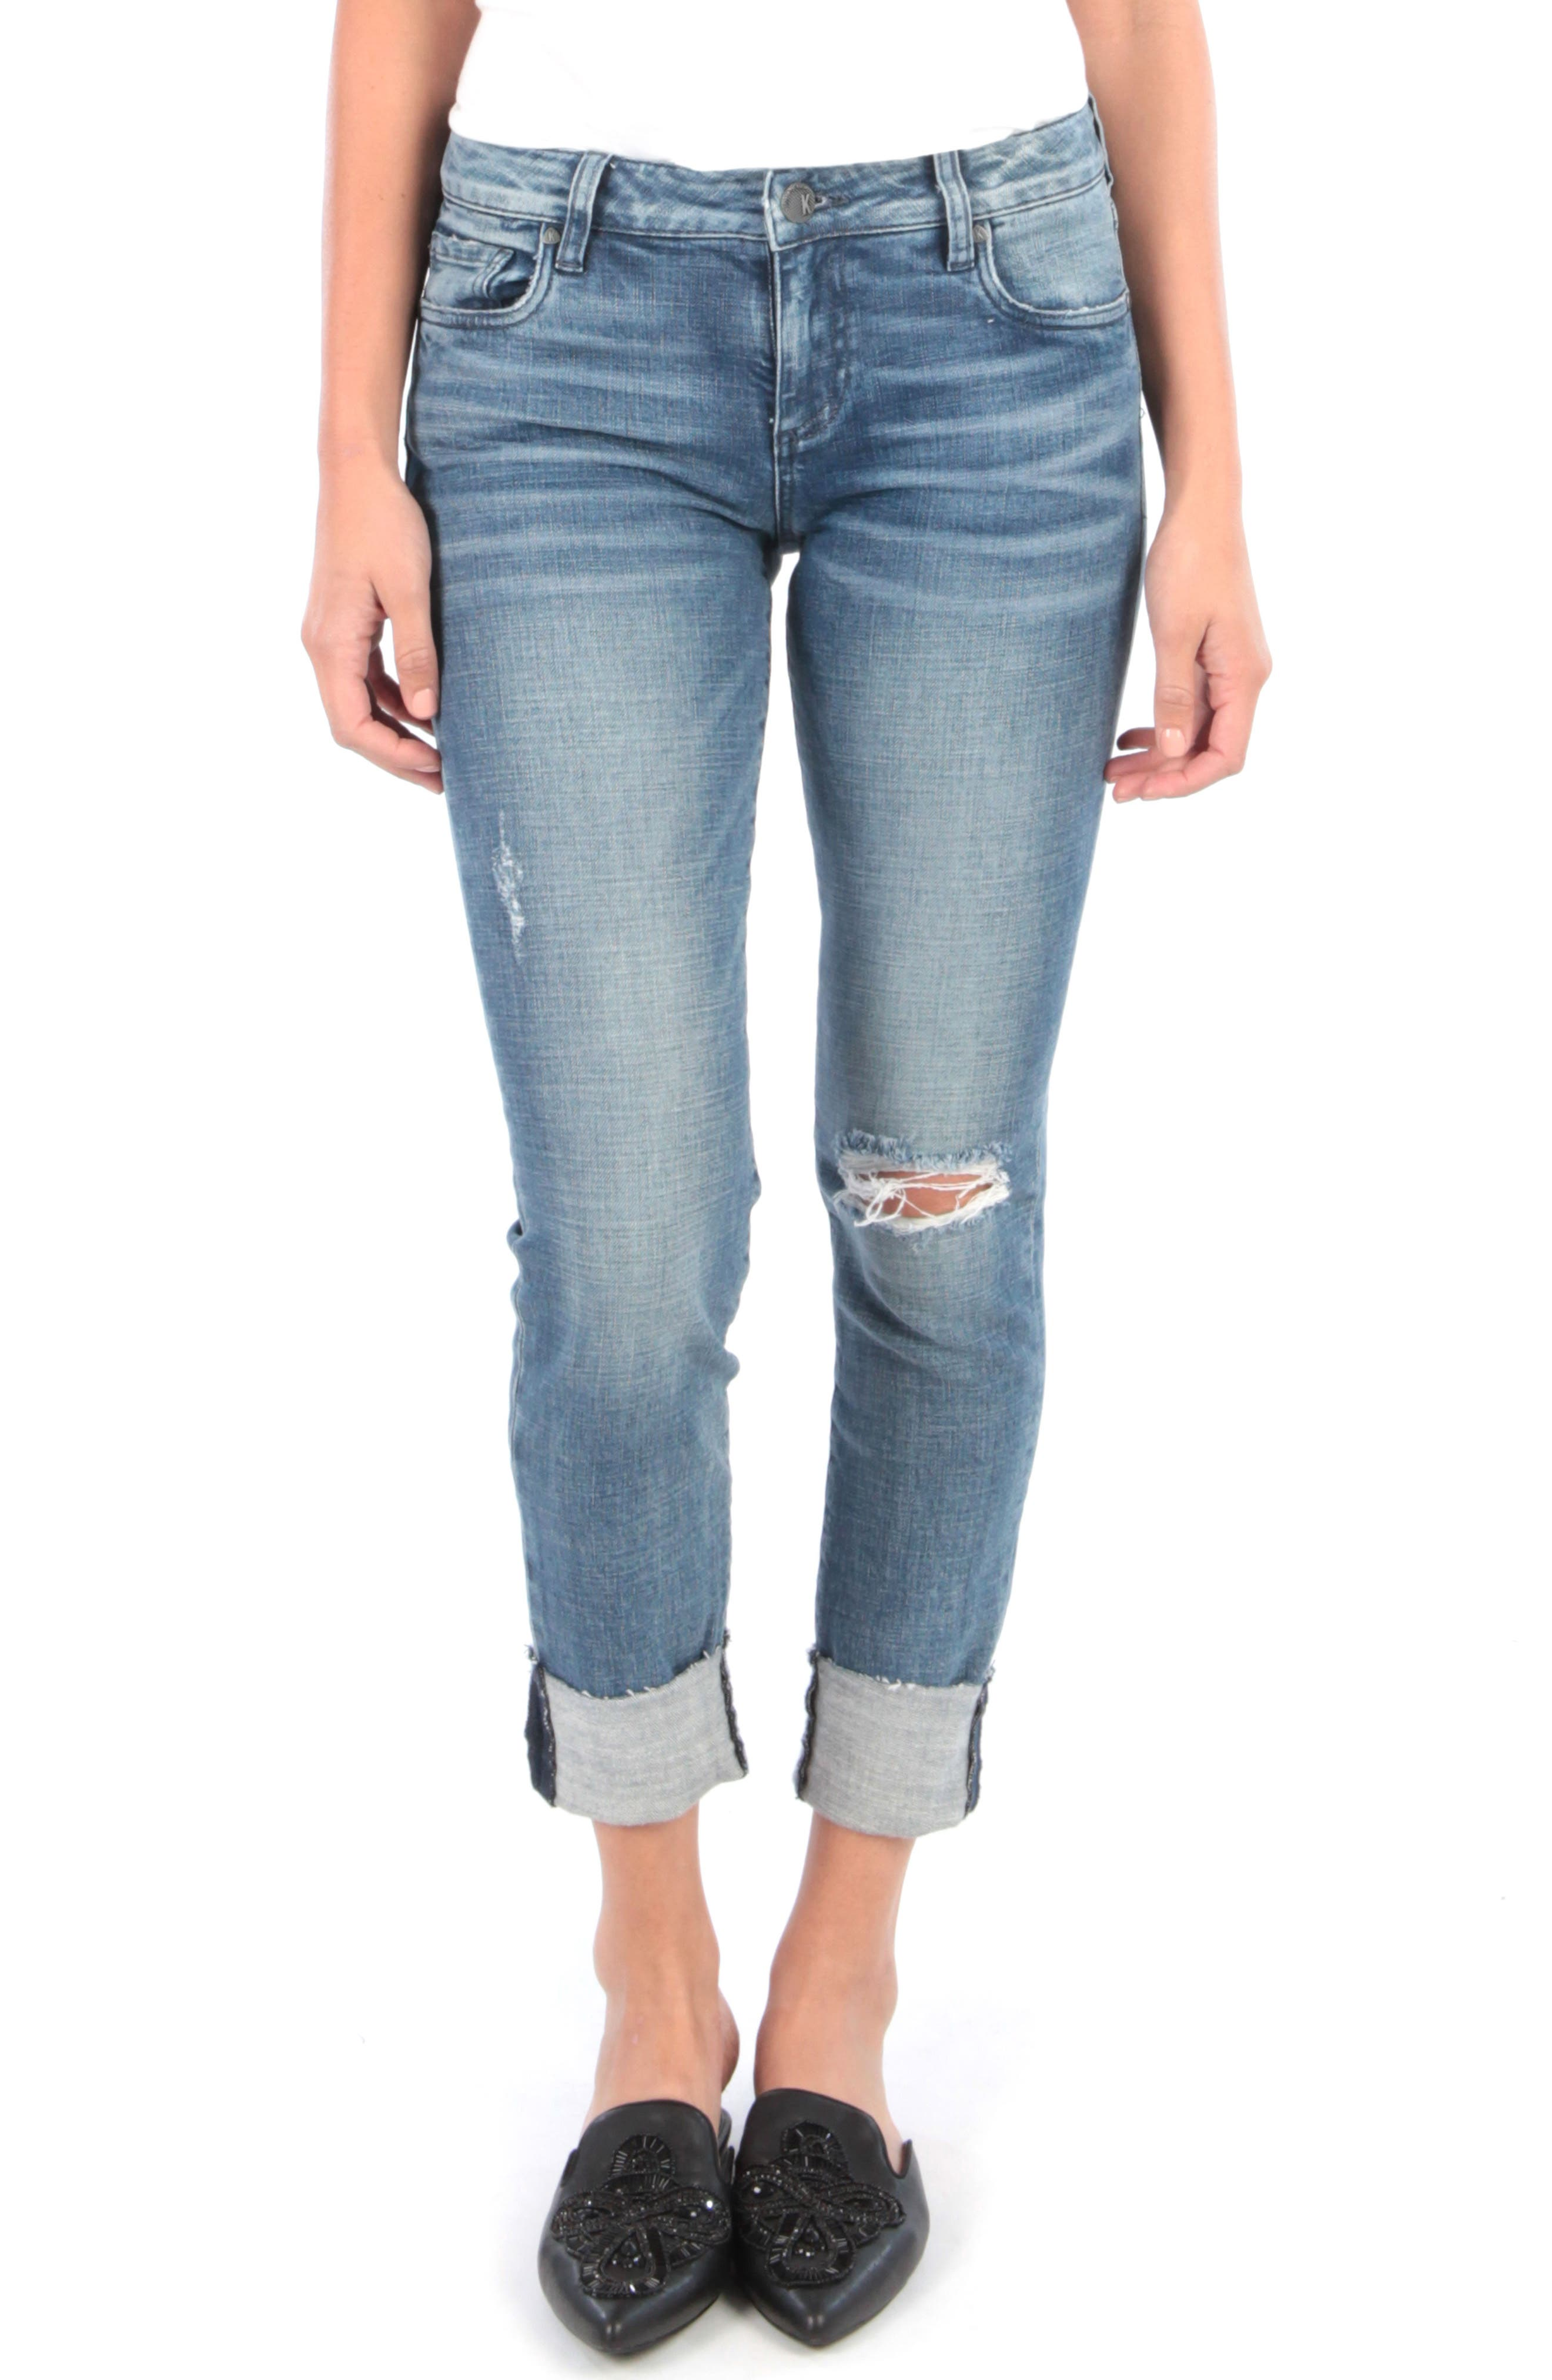 Kut From The Kloth Catherine Ripped Boyfriend Jeans, Blue